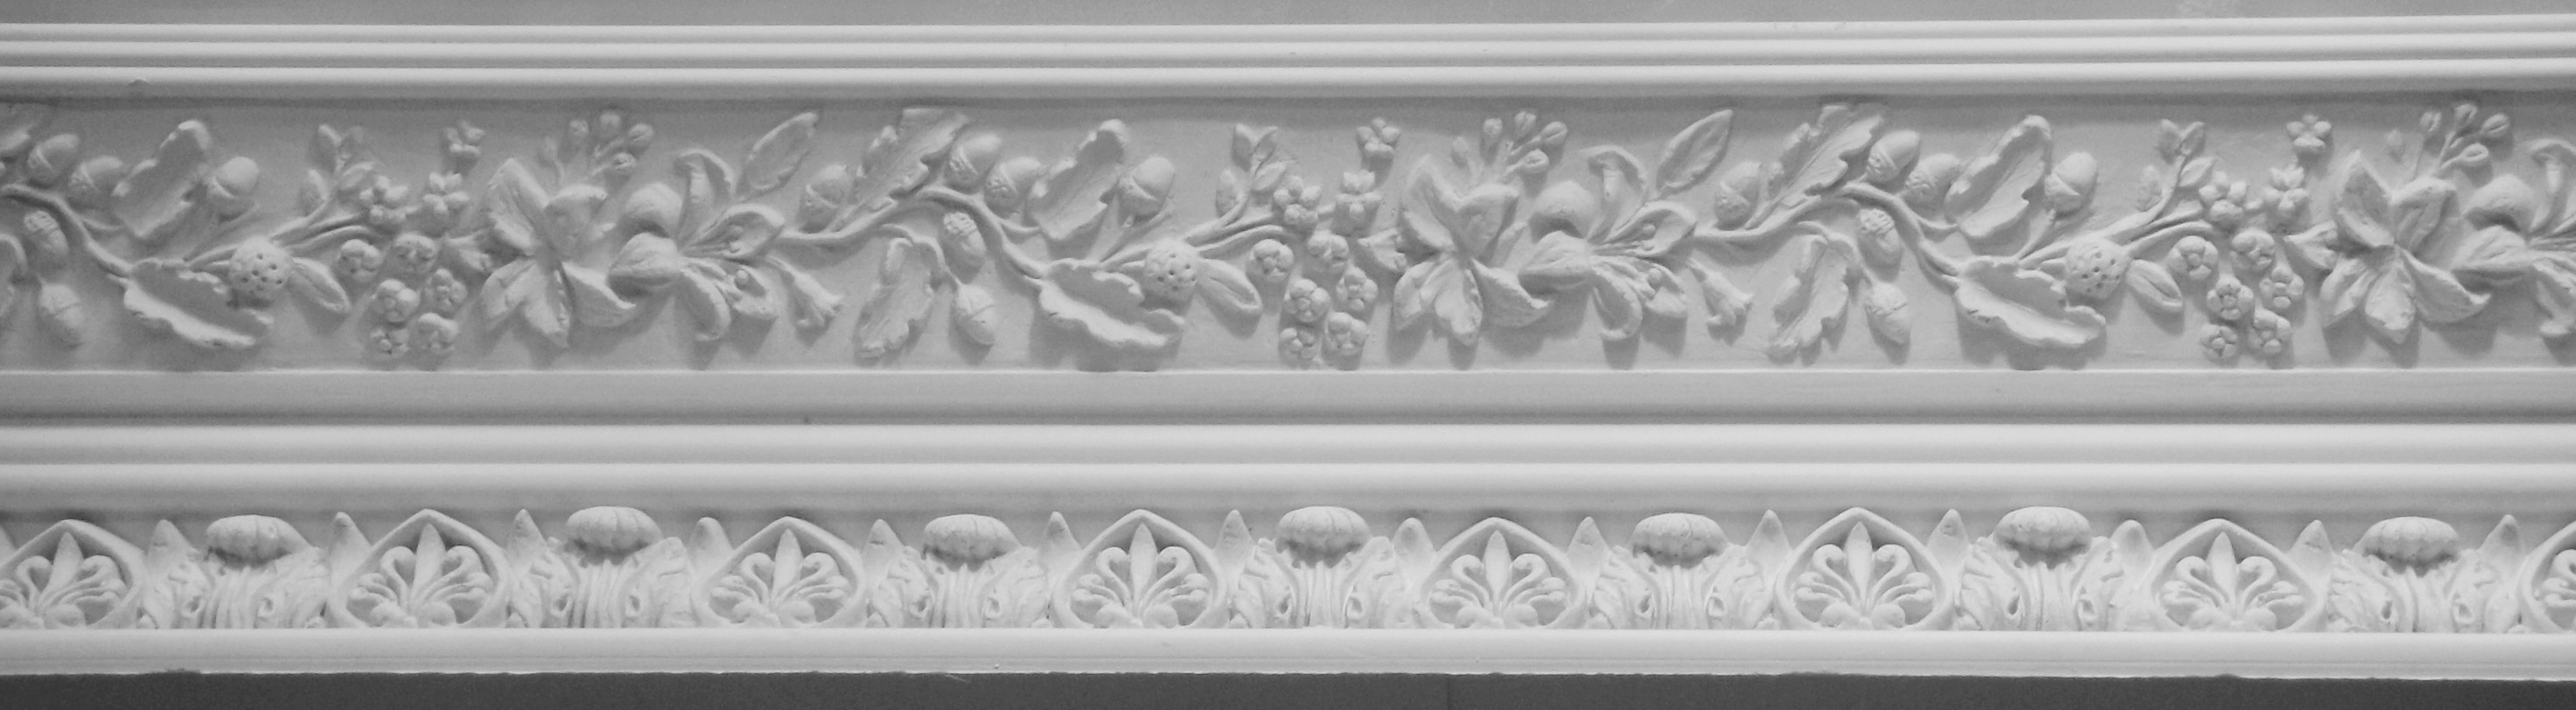 Victorian Coving Designs - Variety of Victorian Cornices